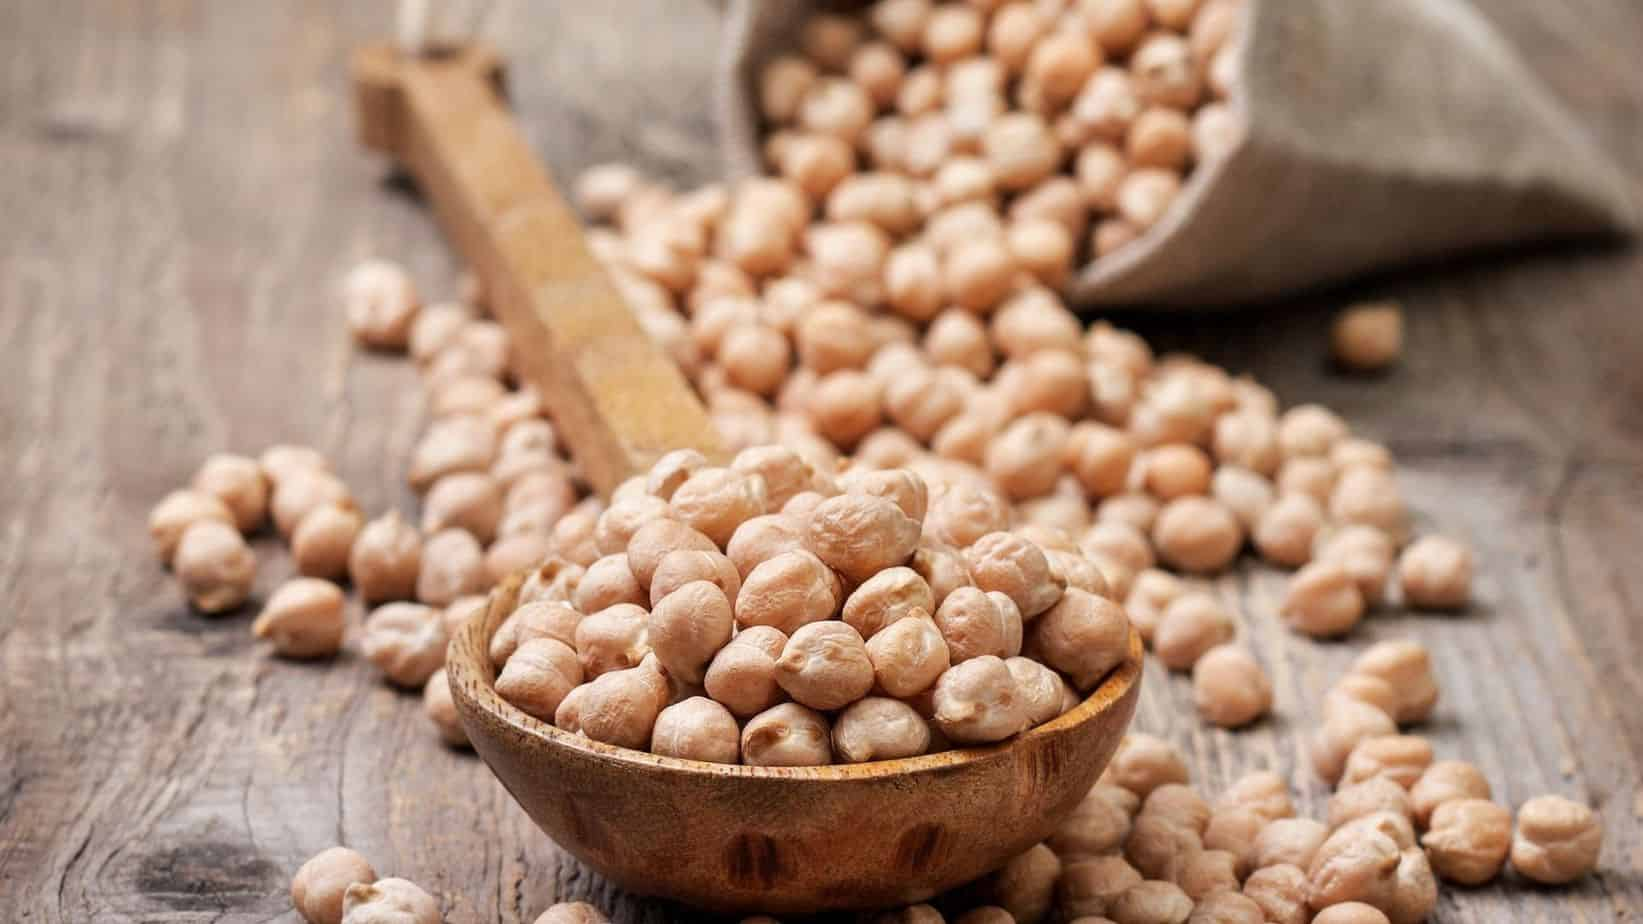 What is the difference between chickpeas and garbanzo beans?